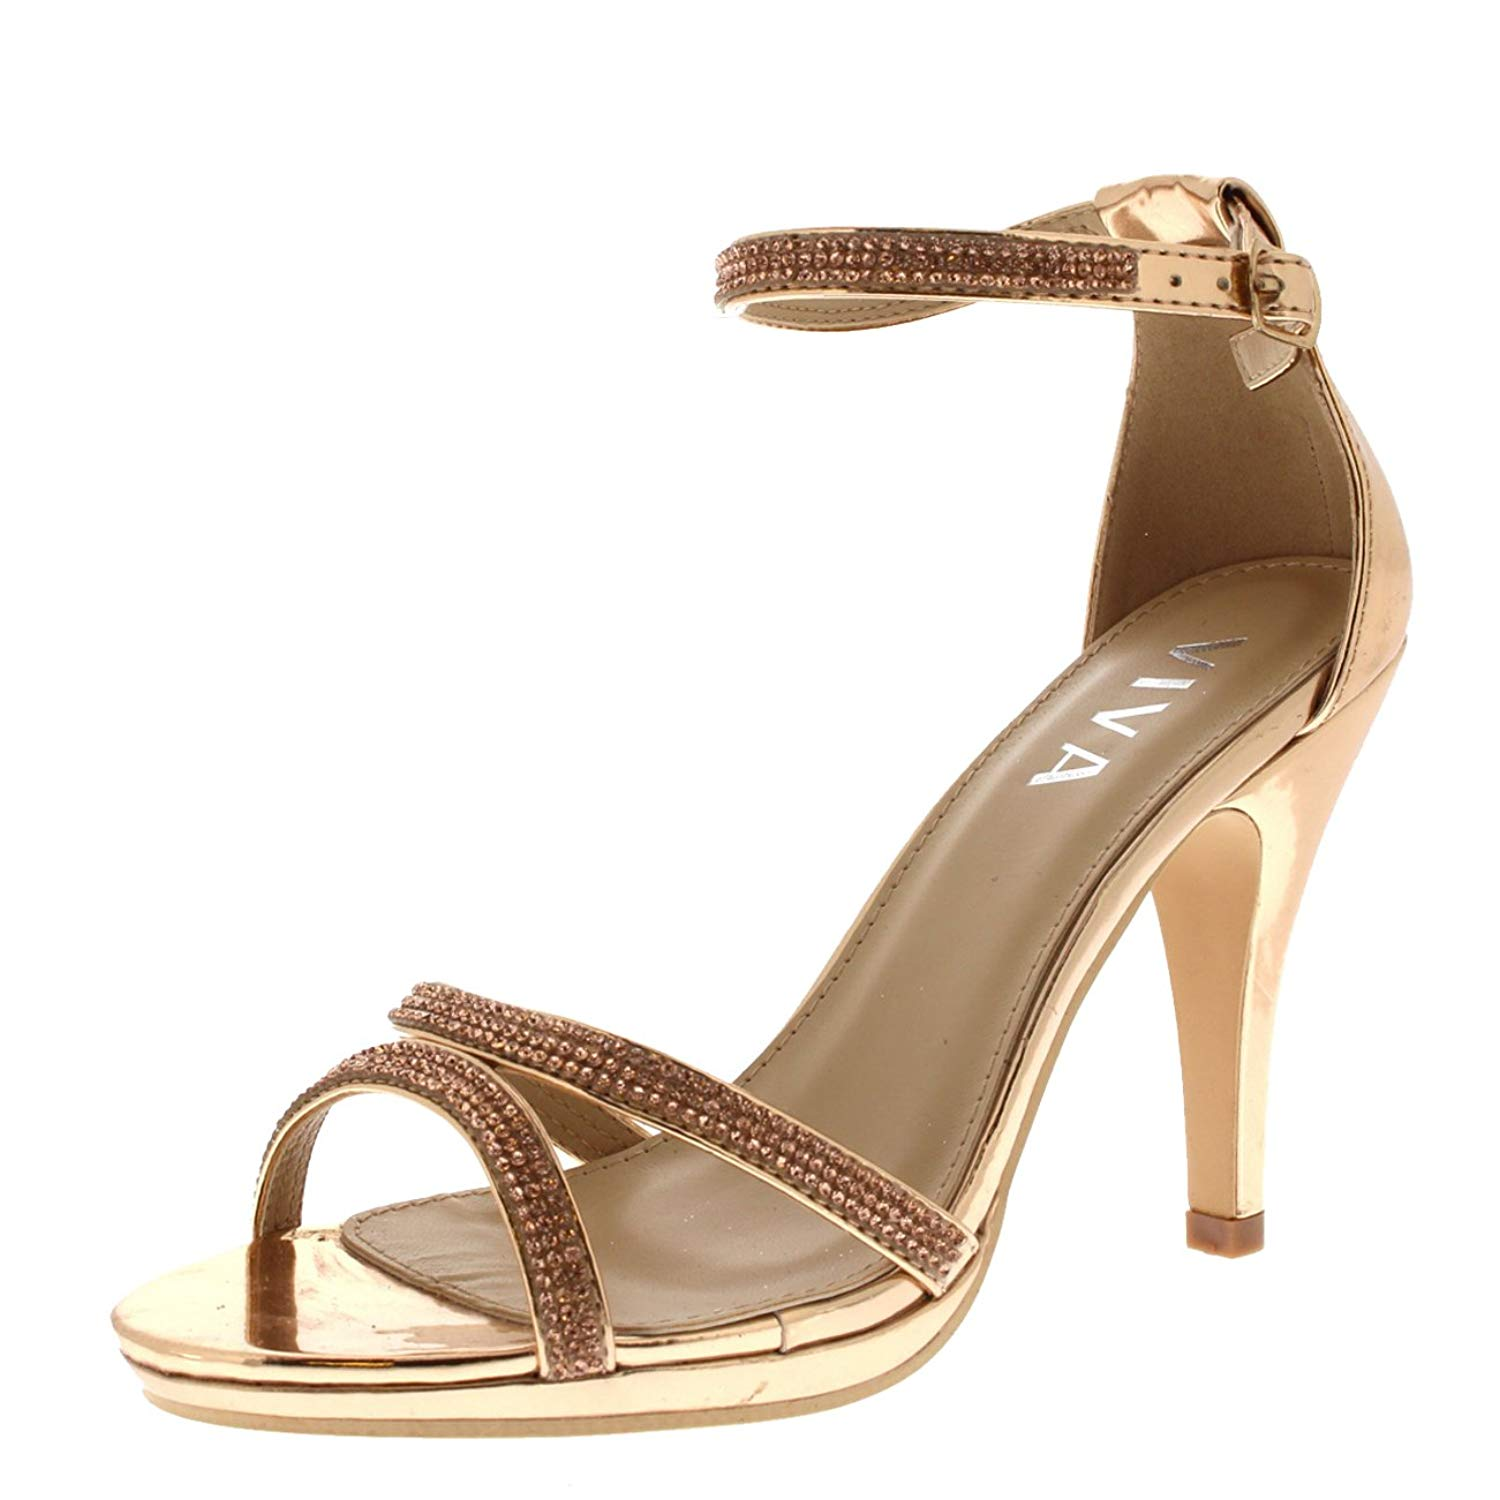 Viva Womens Diamante Mid Heel Ankle Strap Wedding Party Metallic Sandals Shoes